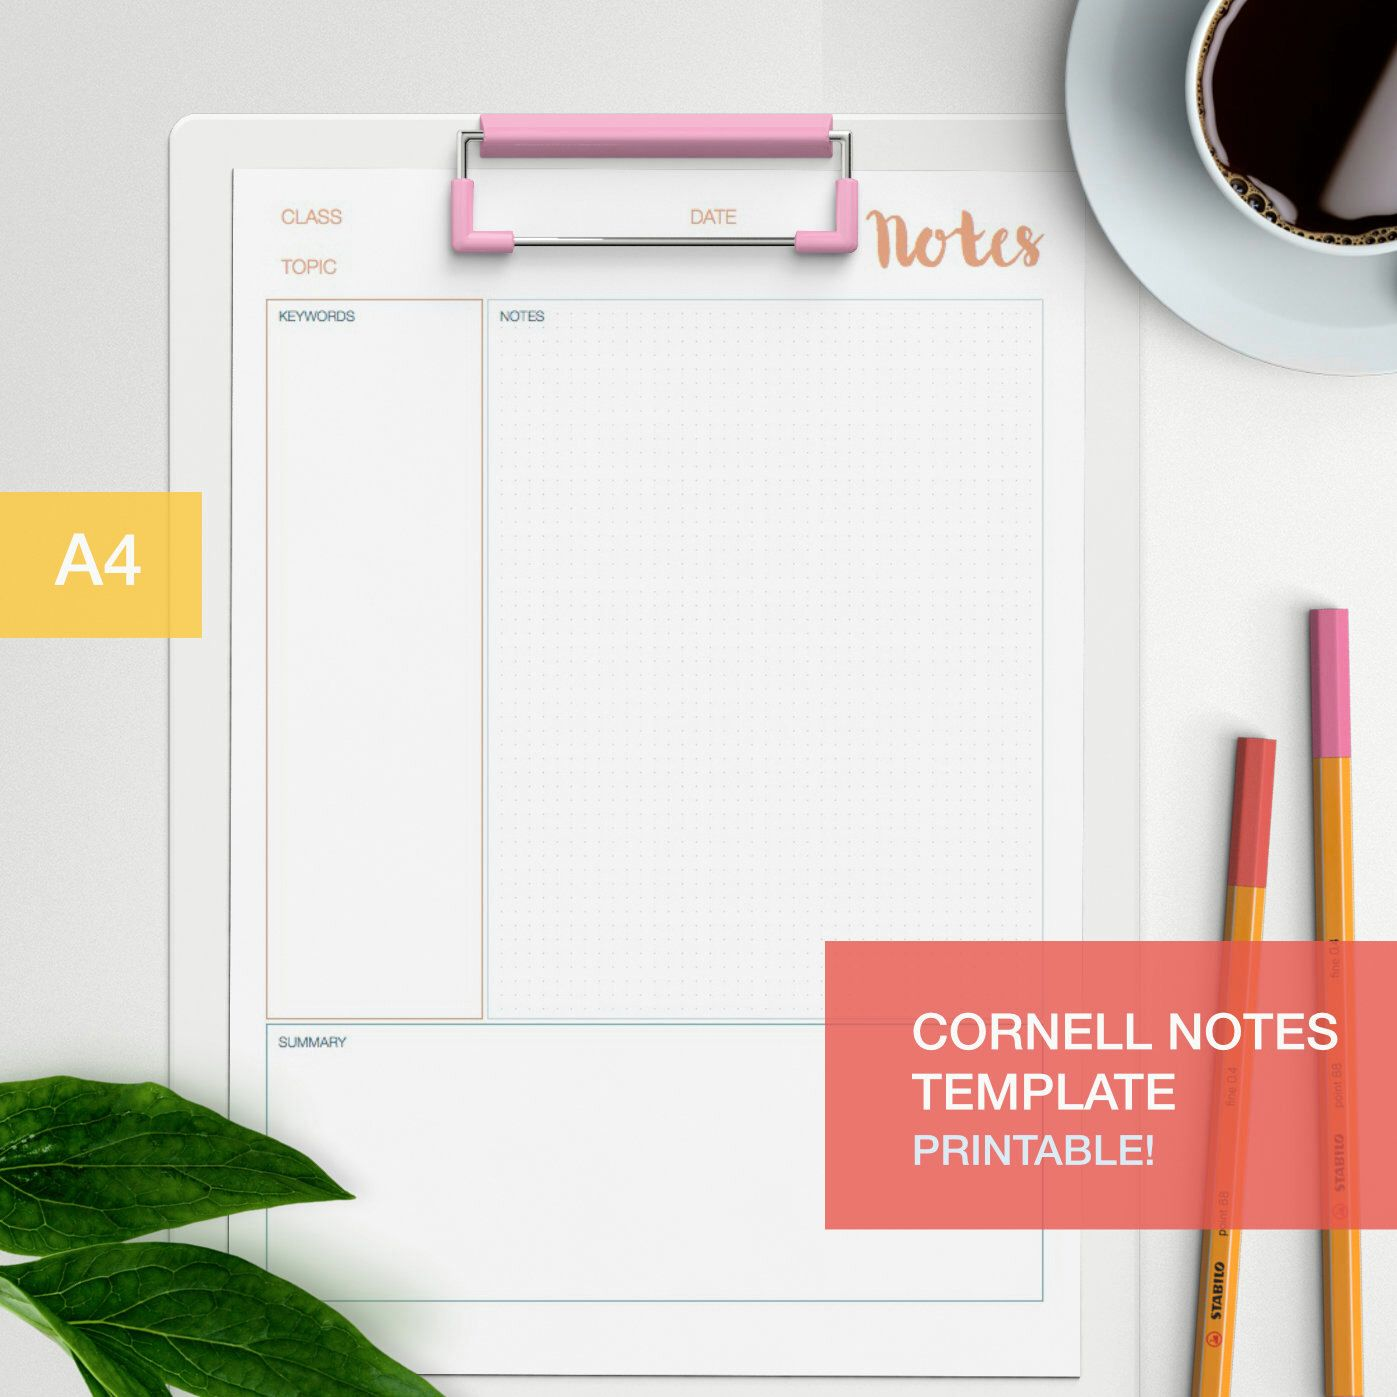 Cornell Notes Template Di Bumblebeasy Su Etsy HttpsWwwEtsyCom